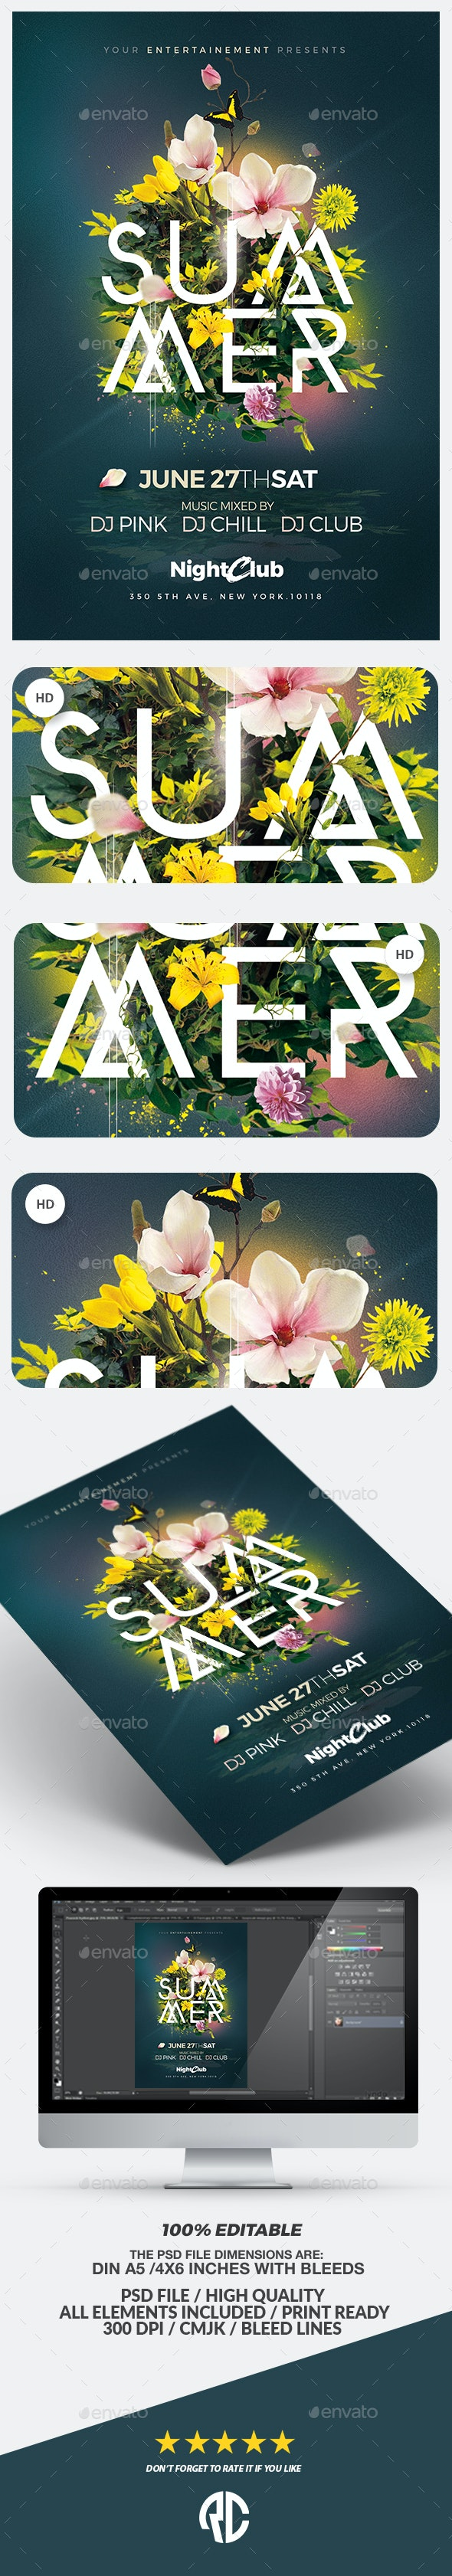 Summer Party | Psd Flyer Template - Events Flyers